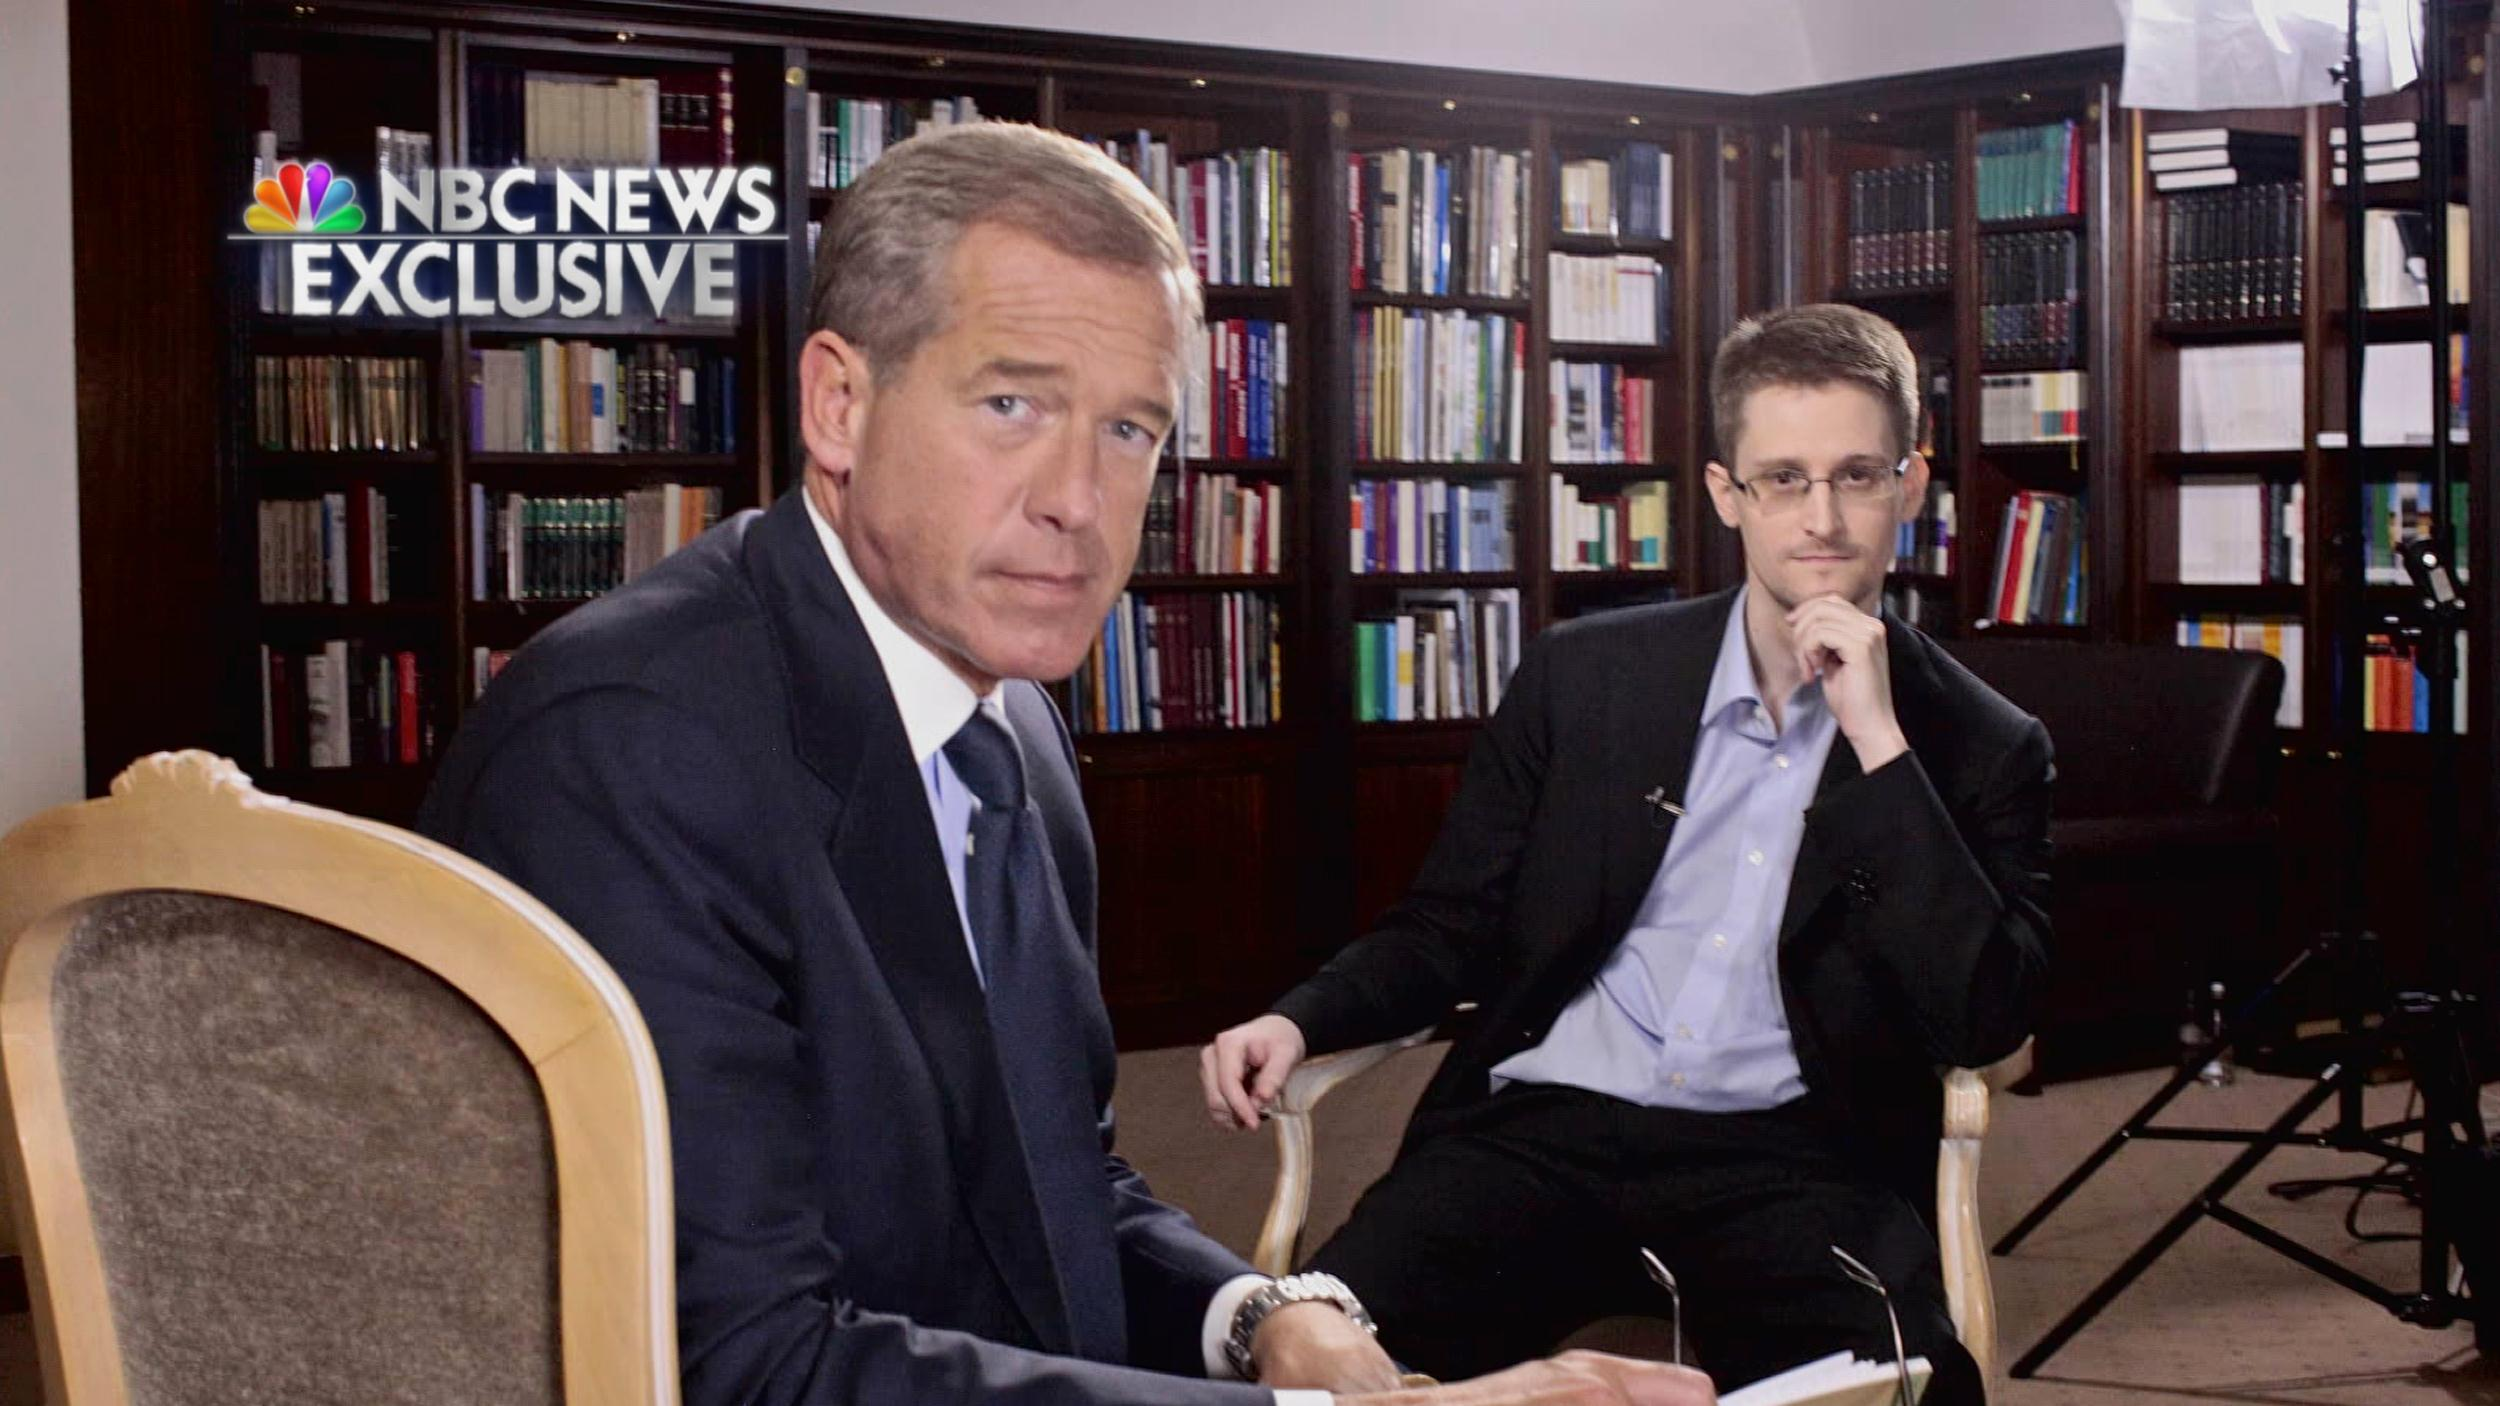 Image: Brian Williams and Edward Snowden during an exclusive interview